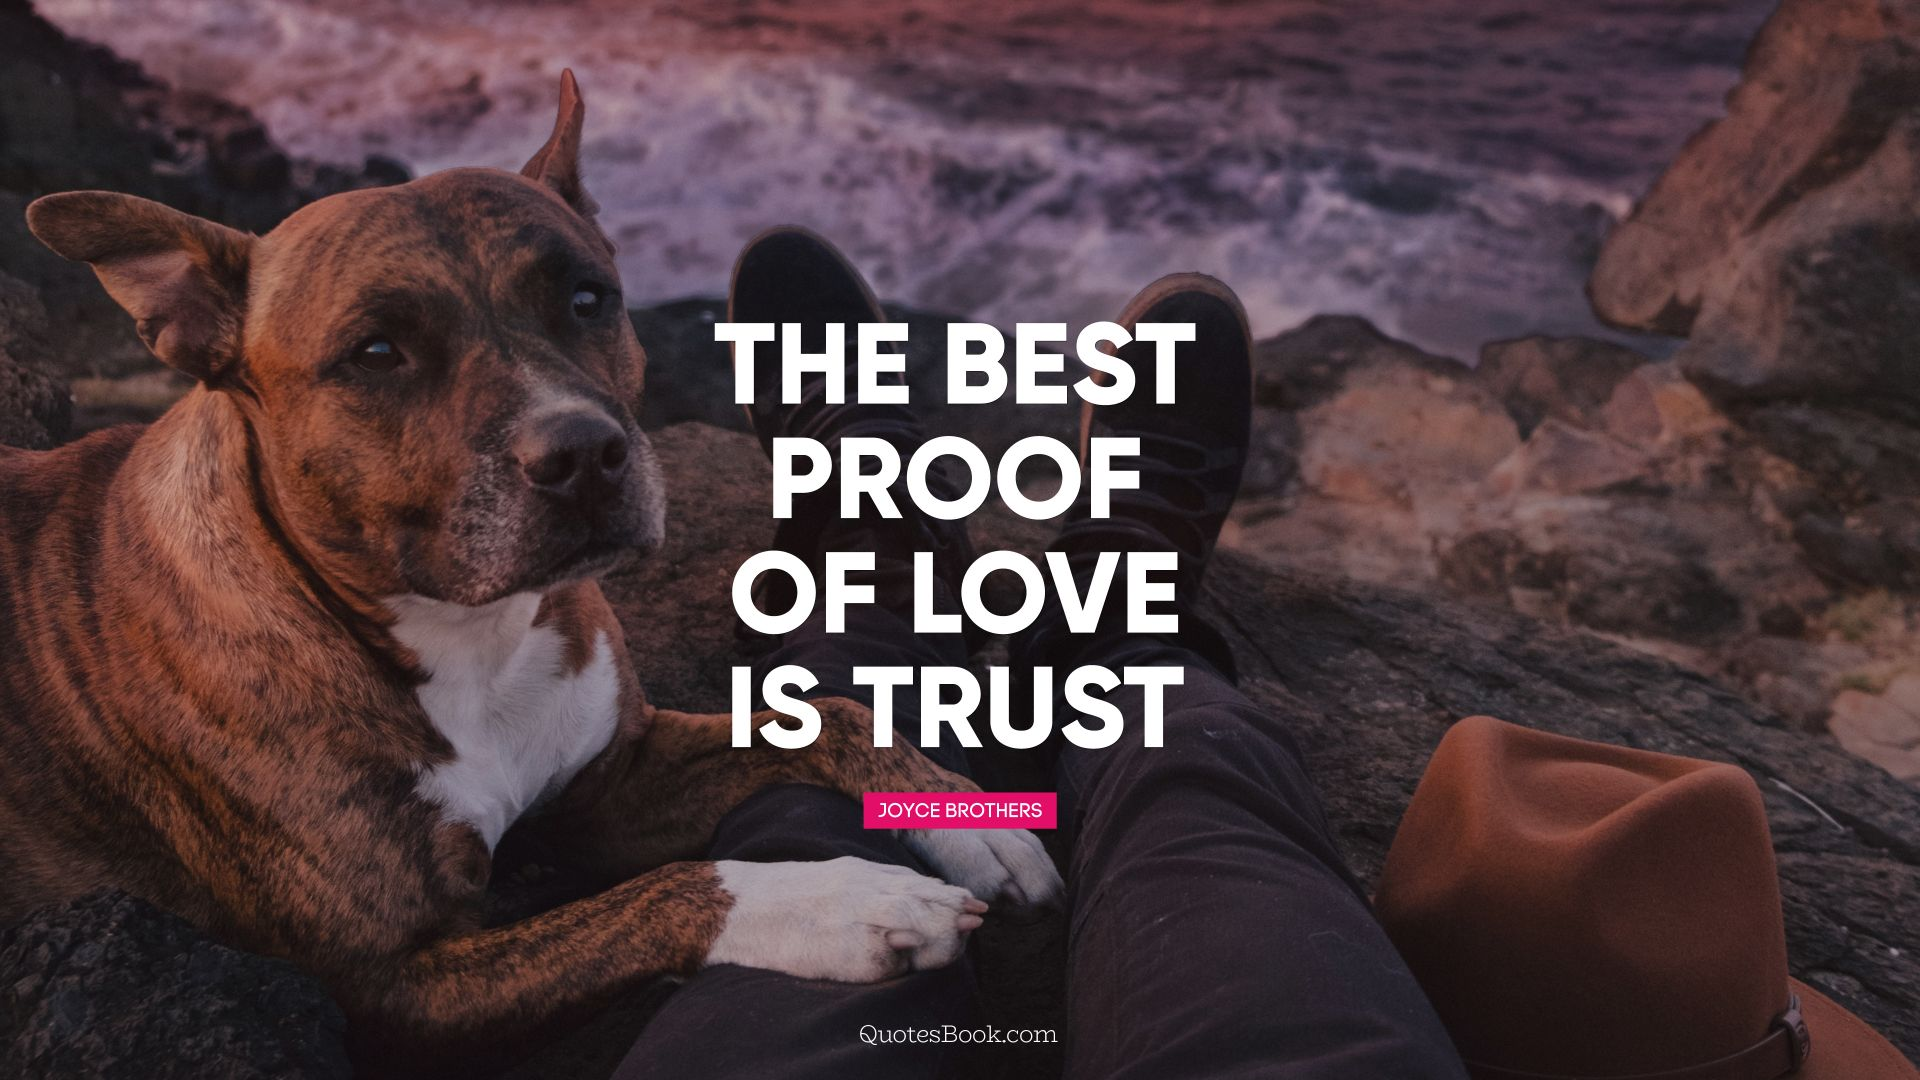 The best proof of love is trust. - Quote by Joyce Brothers